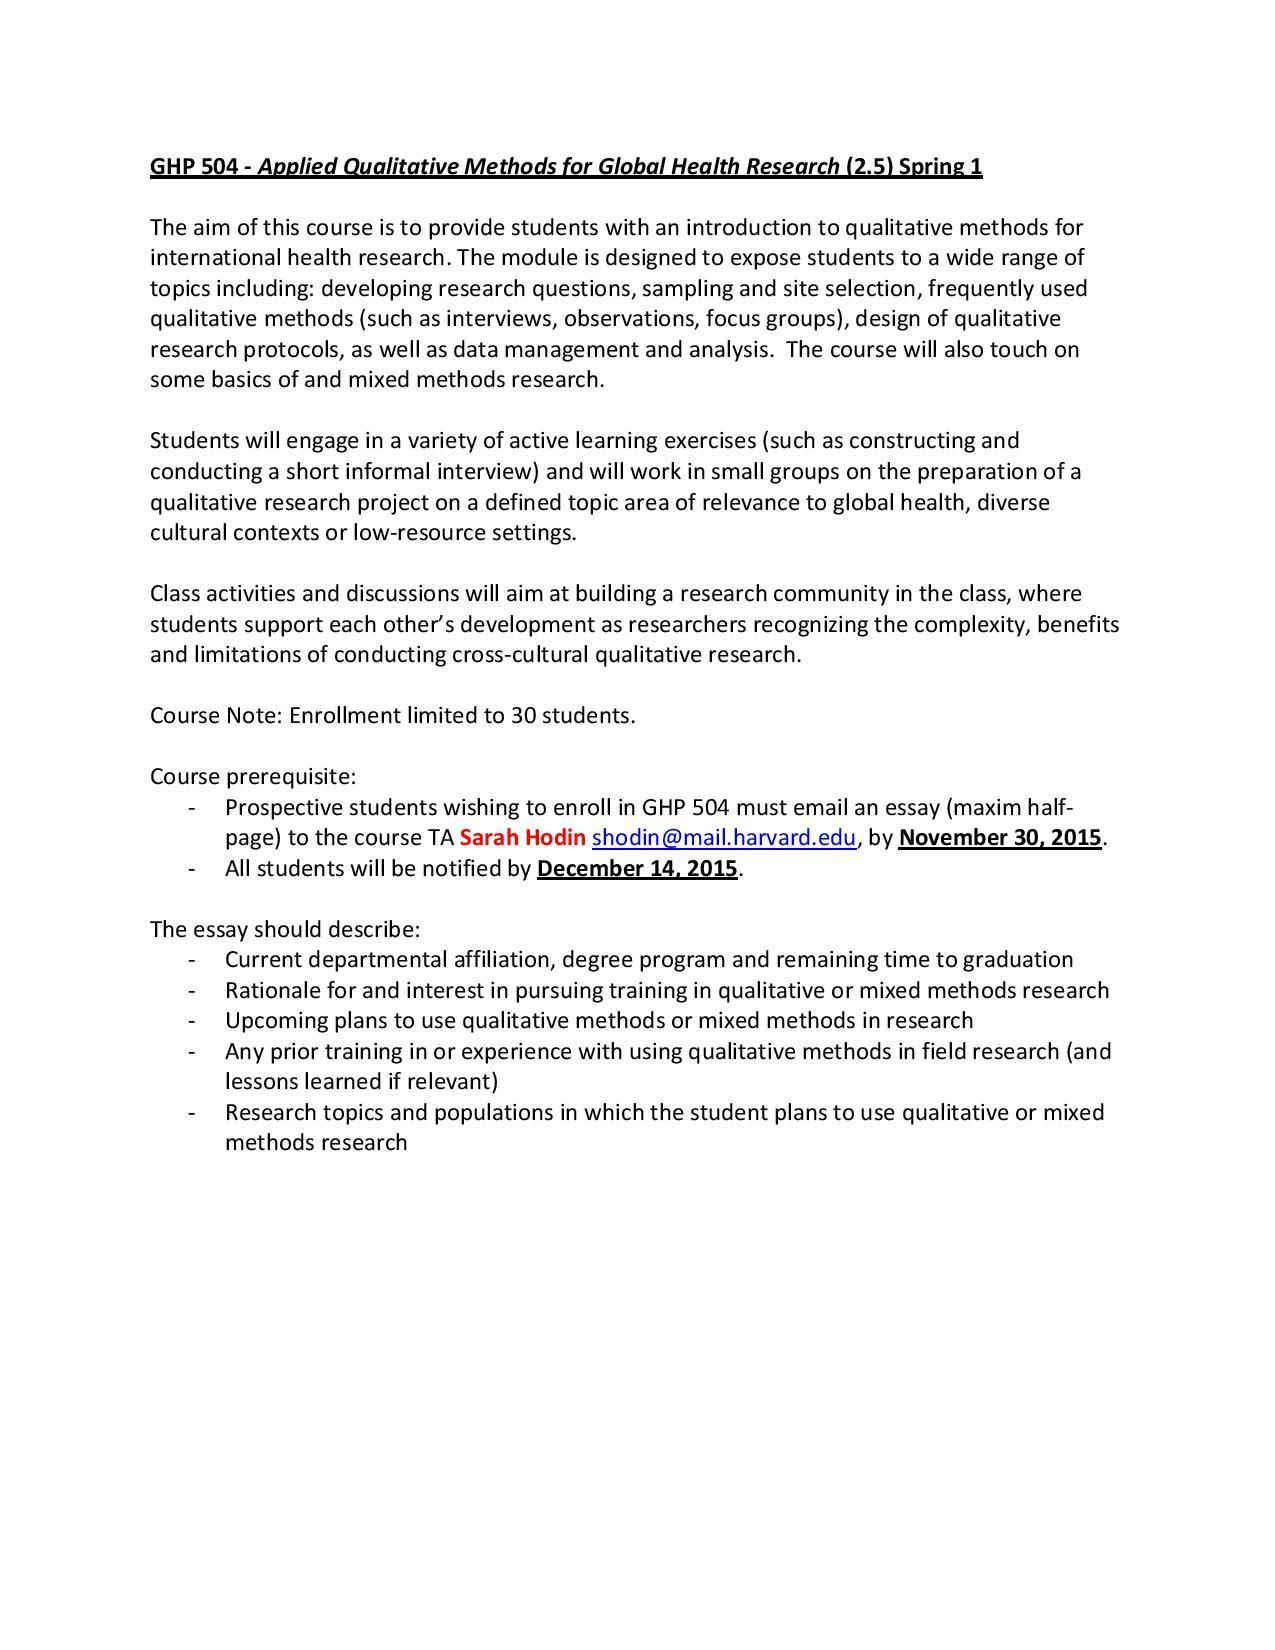 010 Essay Example Ghp Course Announcement Page Harvard Astounding Prompt Prompts 2017-18 College 2017 Full